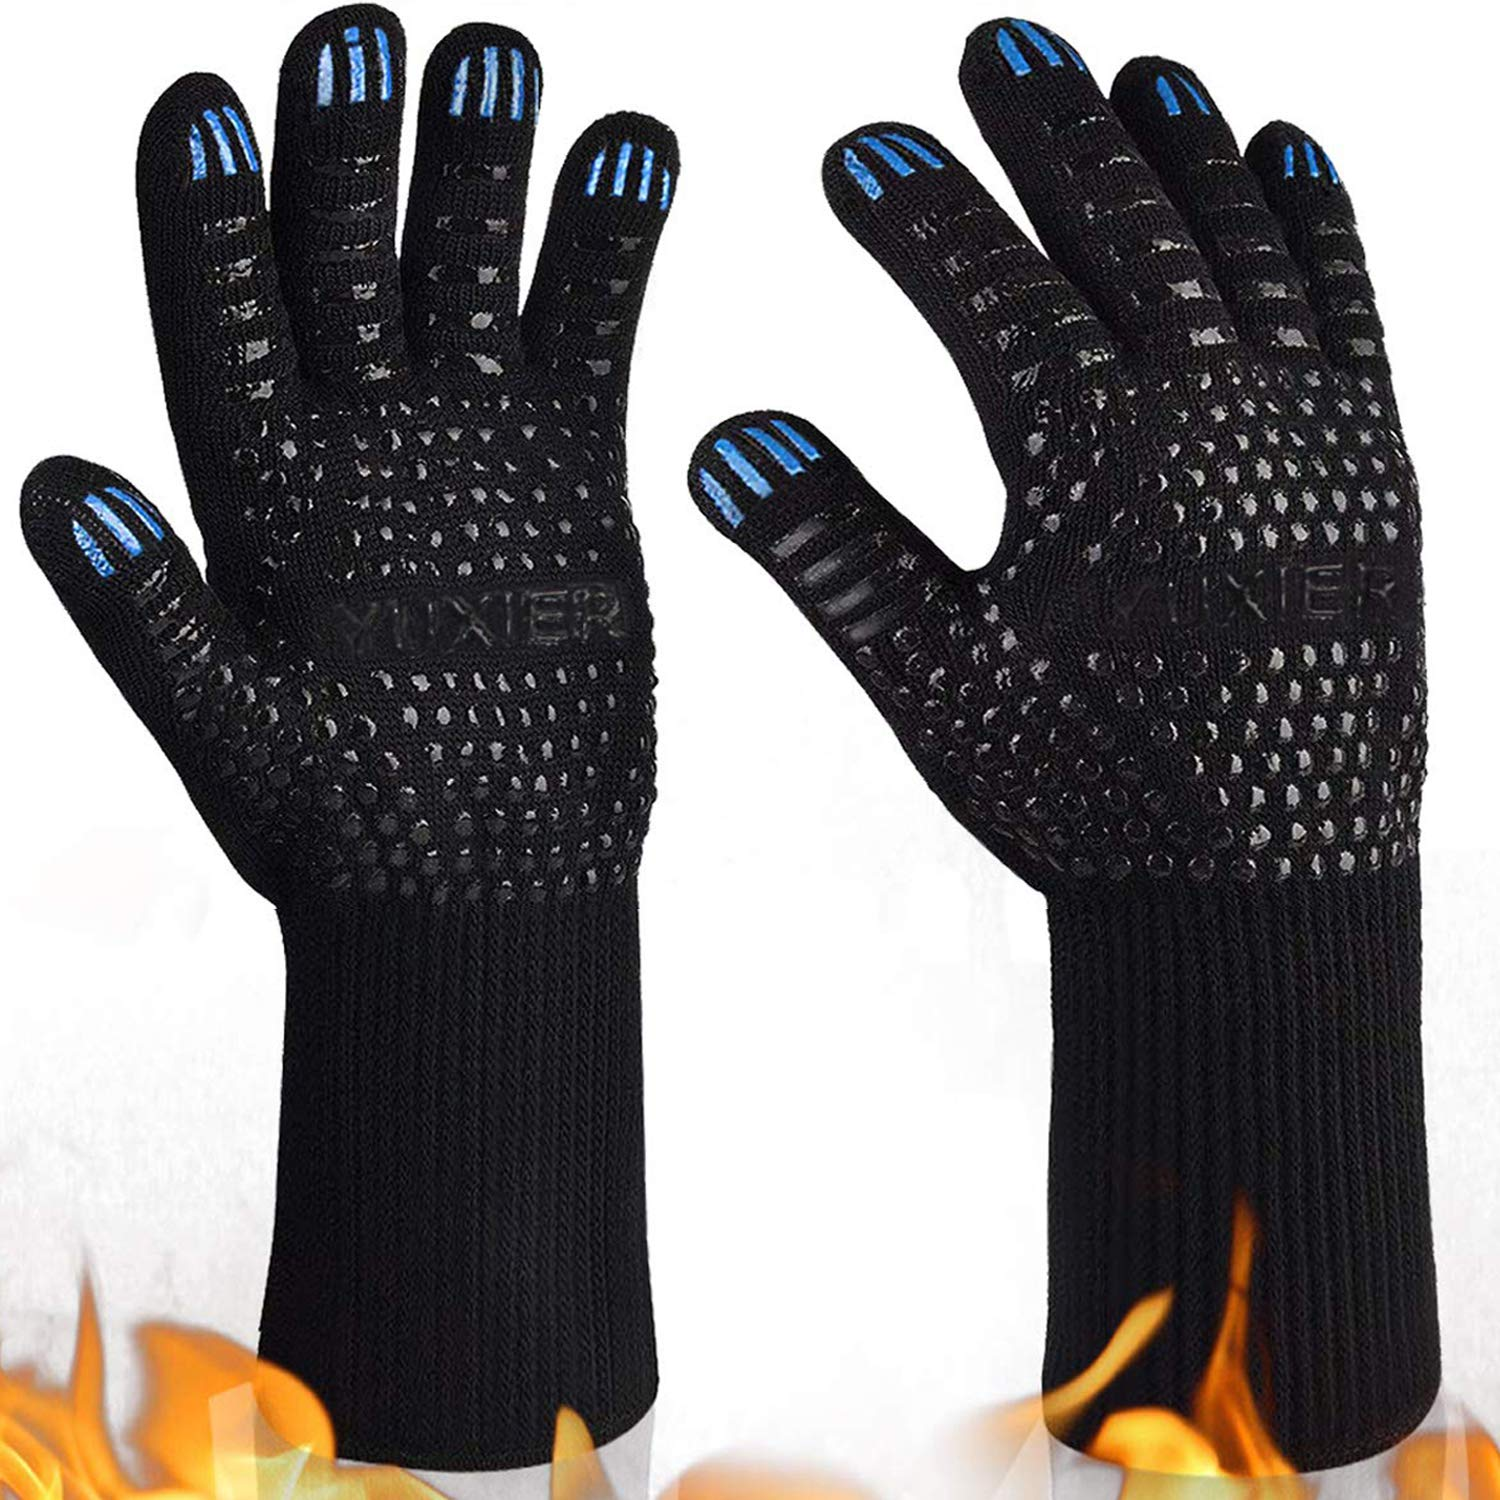 BBQ Grill Gloves, 1472°F Extreme Heat Resistant Oven Mitts Kitchen Gloves for Welding, Cooking, Grilling, Baking, Pot Holders (1pair) by YUXIER